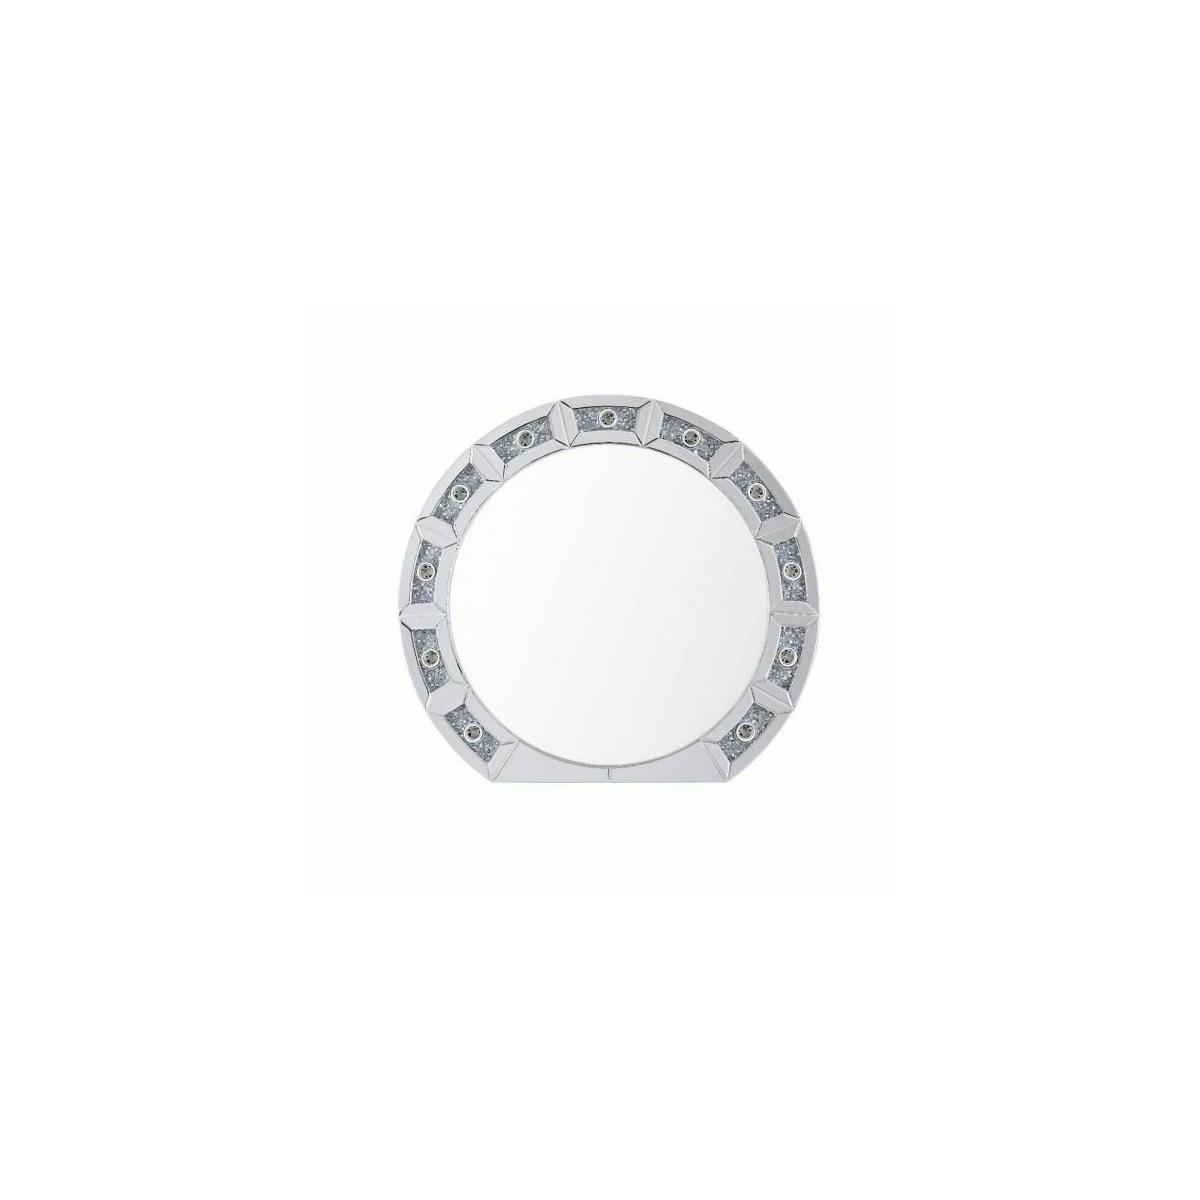 ACME Noralie Wall Decor - 97748 - Glam - LED Light, Mirror, Glass, MDF, Faux Diamonds (Acrylic) - Mirrored and Faux Diamonds